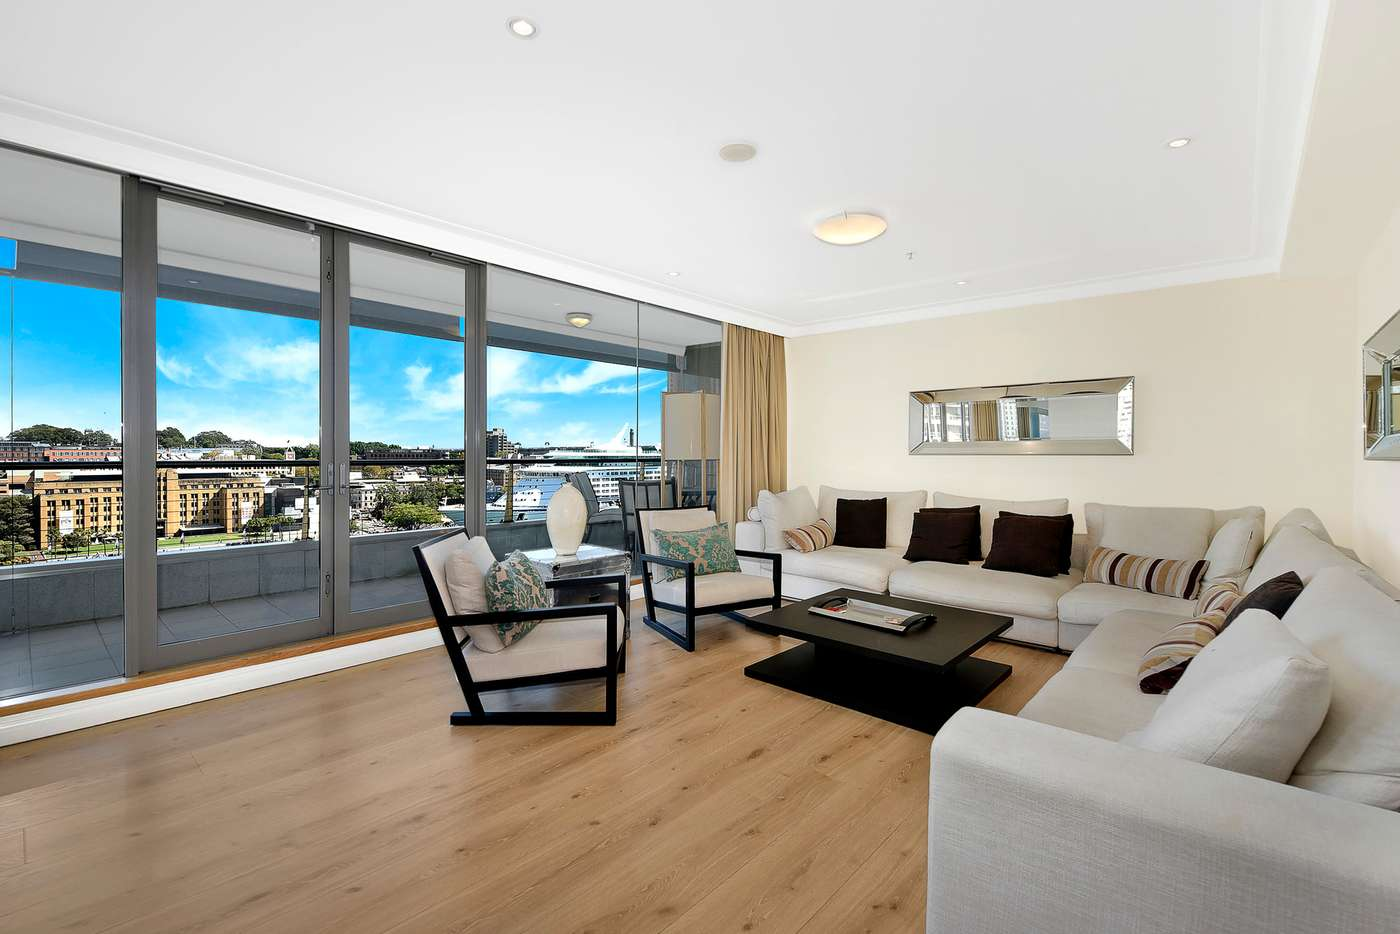 Main view of Homely apartment listing, 1402/61 Macquarie Street, Sydney NSW 2000